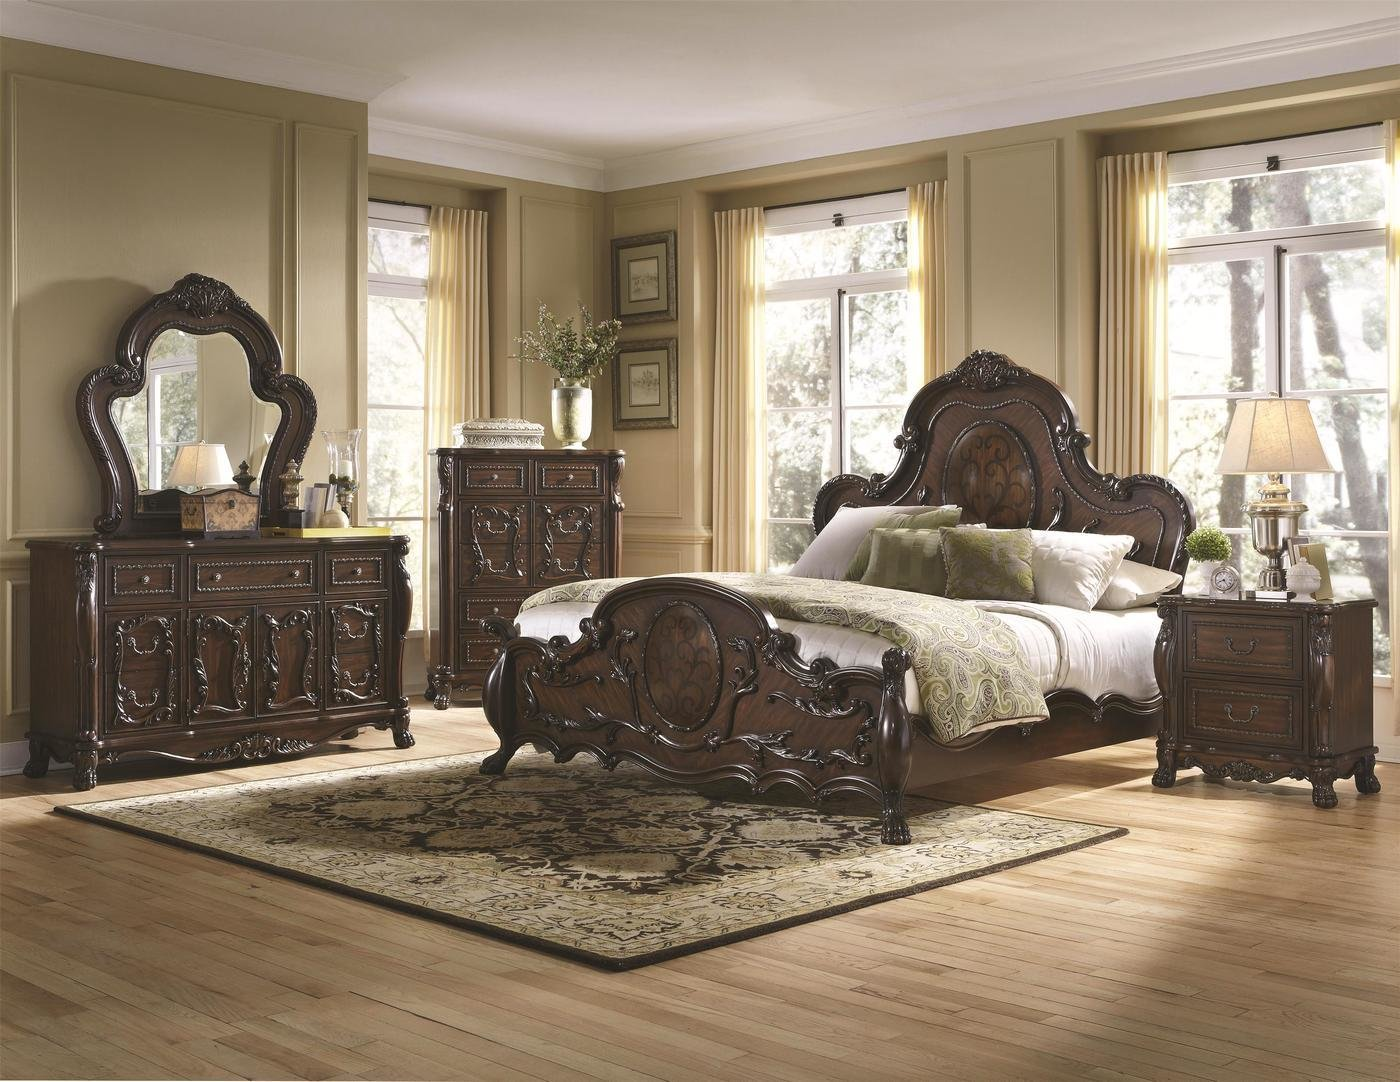 Best Antique Bedroom Set Cherry Bedroom Sets Shop Factory With Pictures